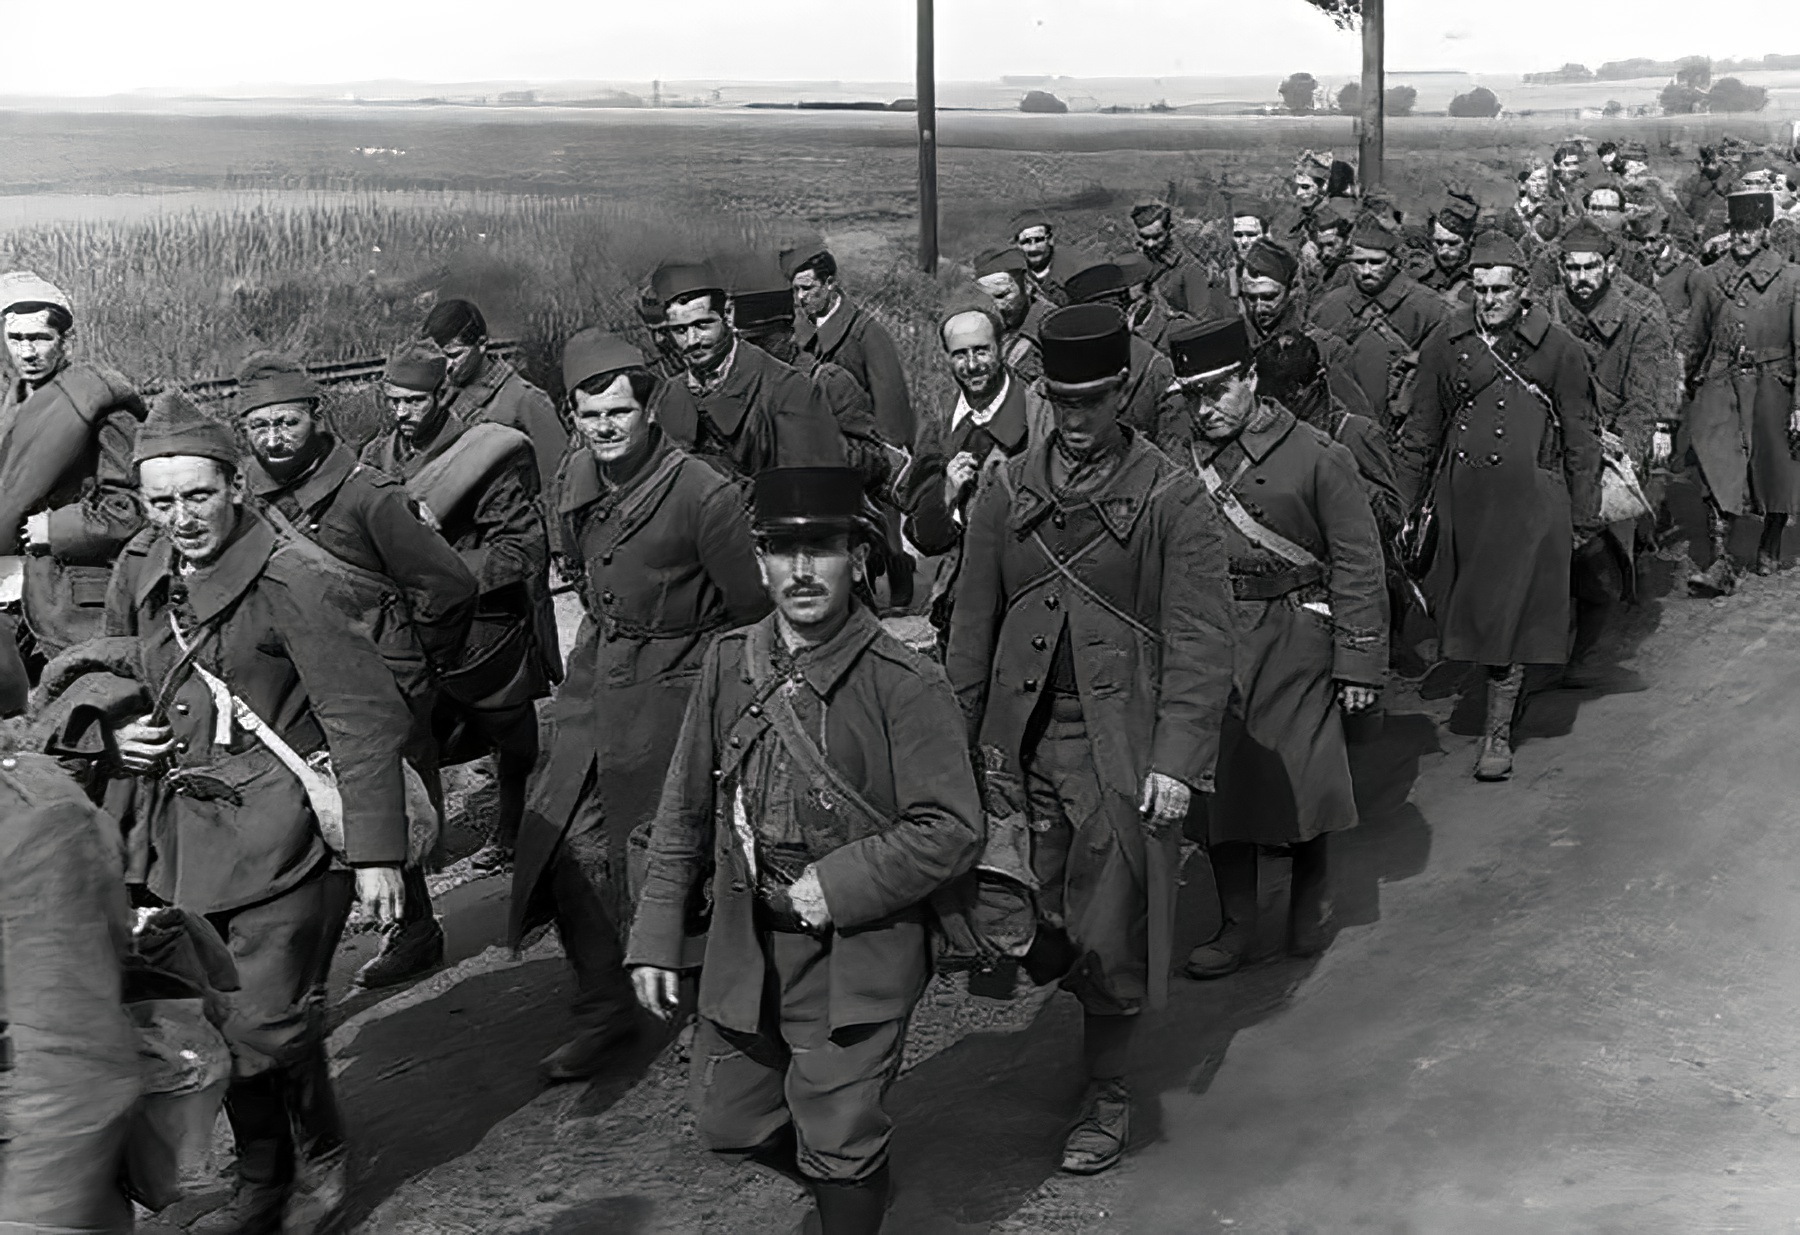 French POWs prisoners of war are marched into internment wiki 01